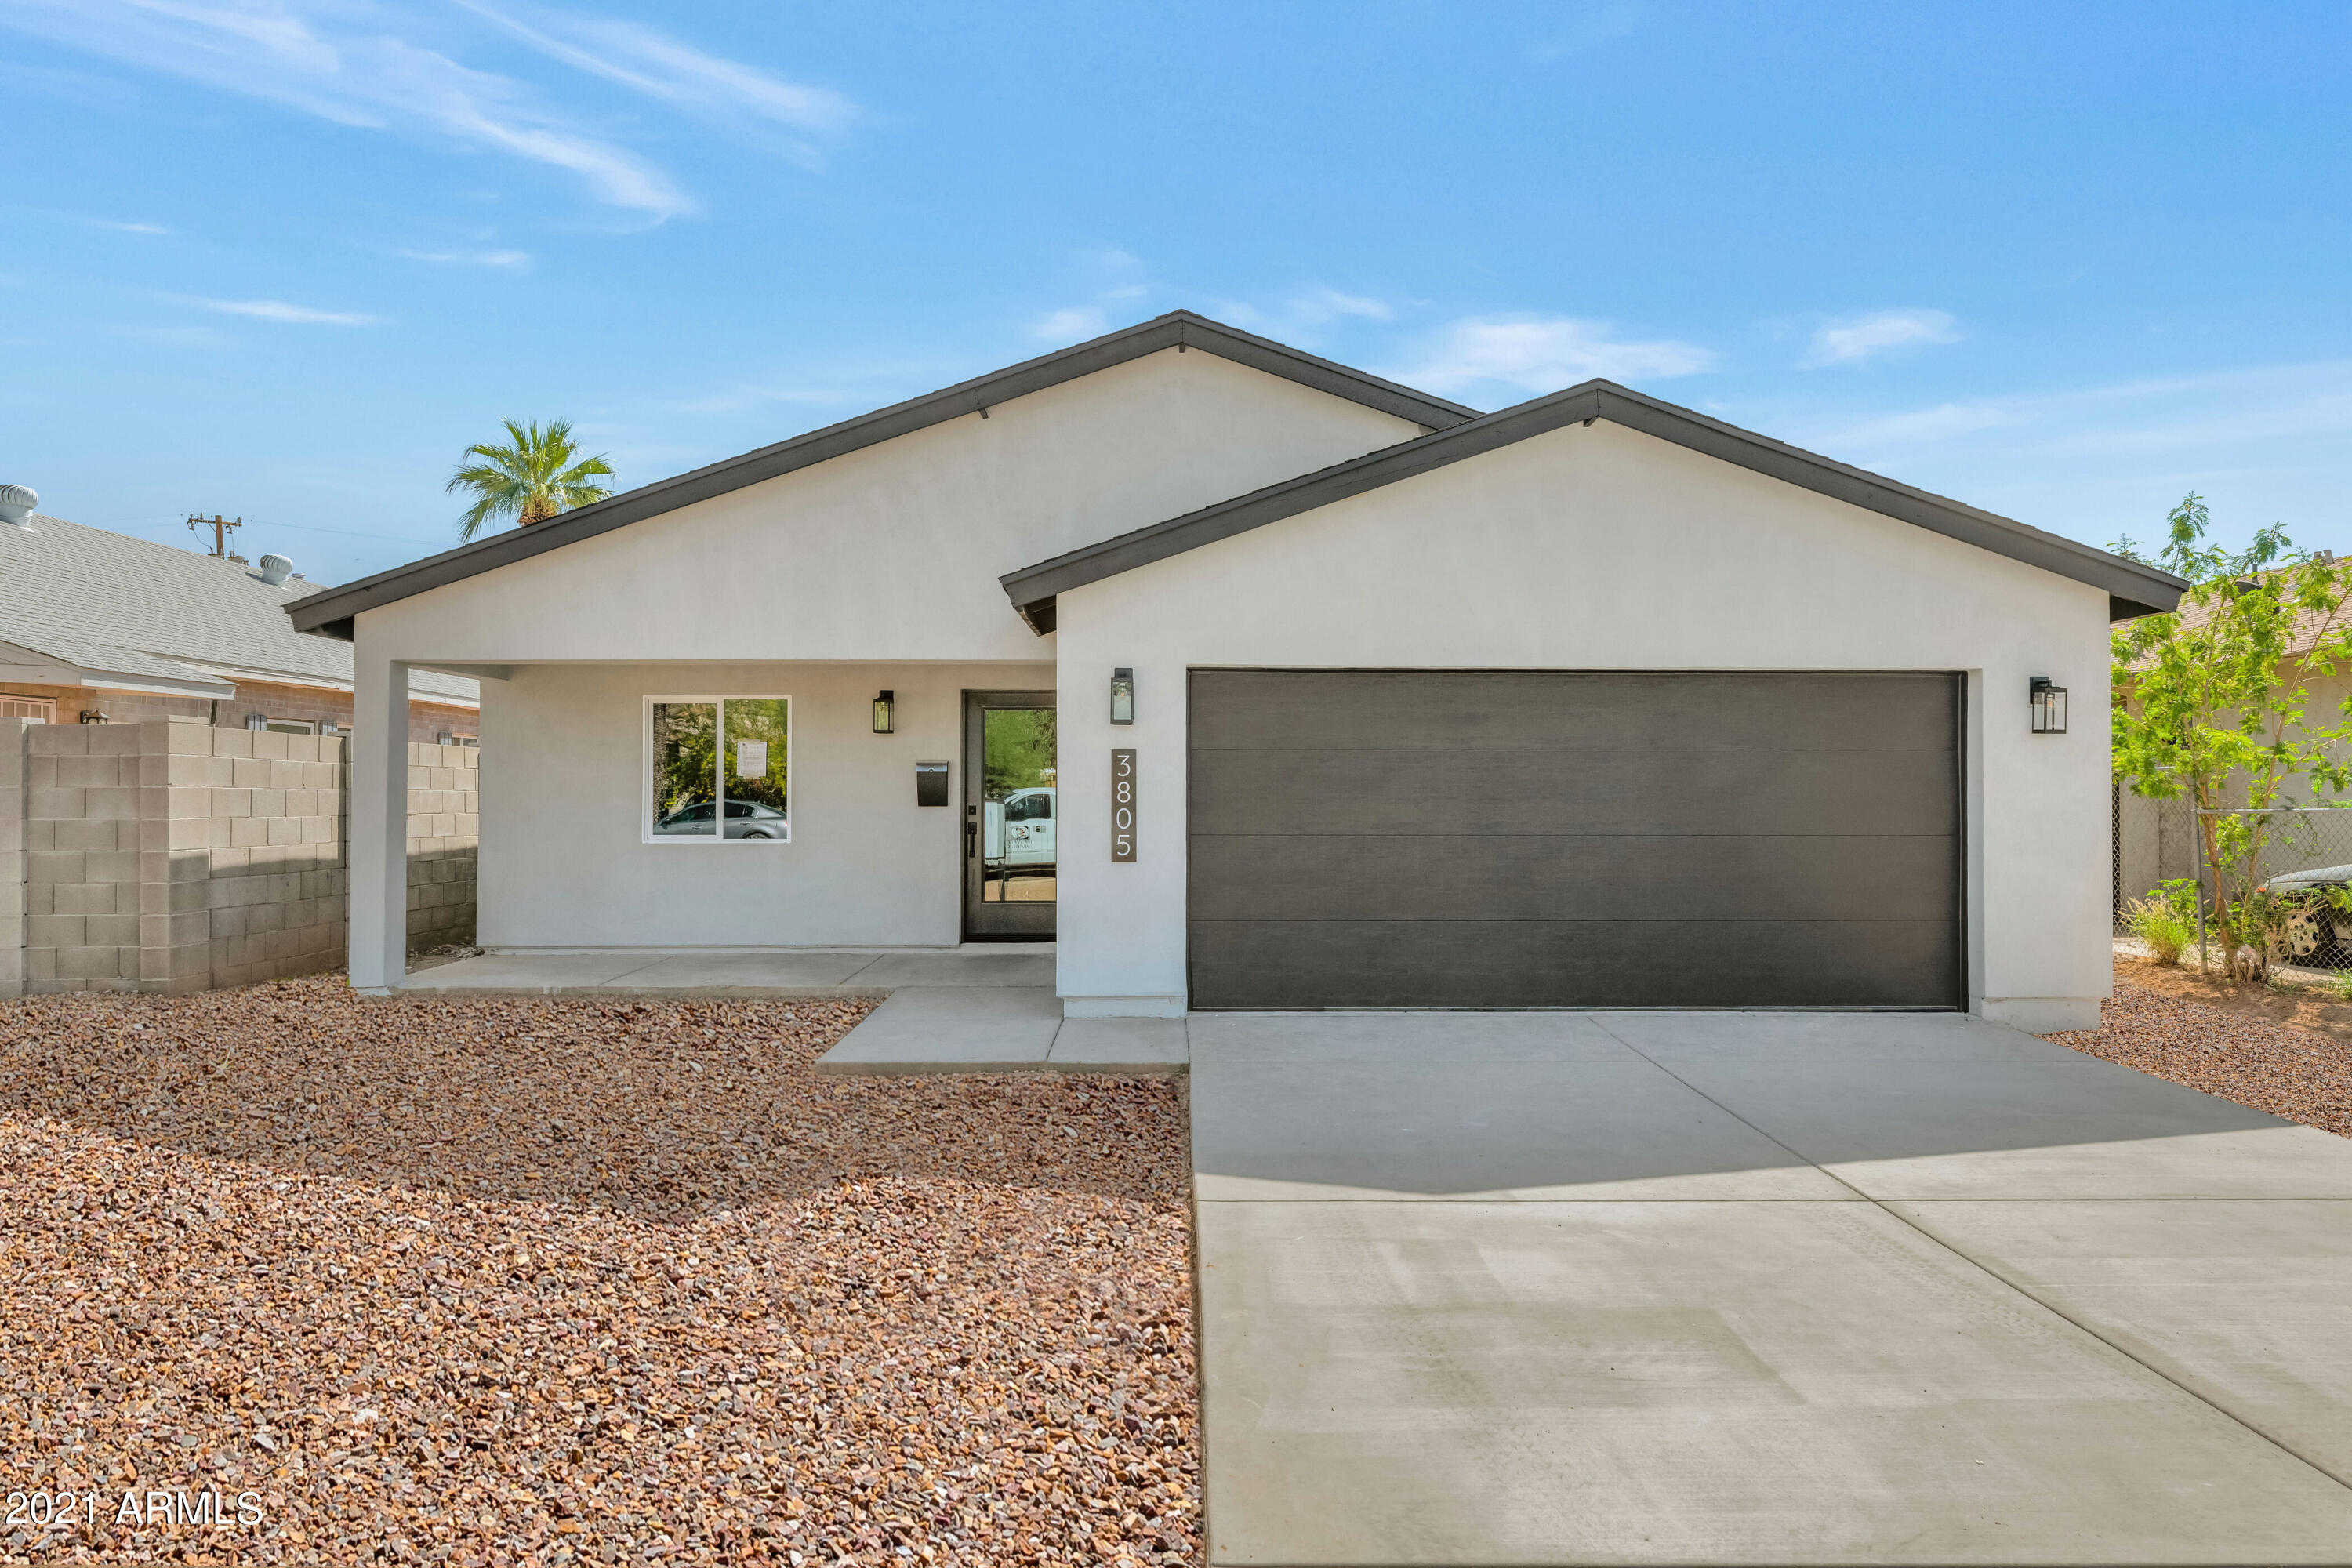 $625,000 - 3Br/3Ba - Home for Sale in Thomas Place, Phoenix